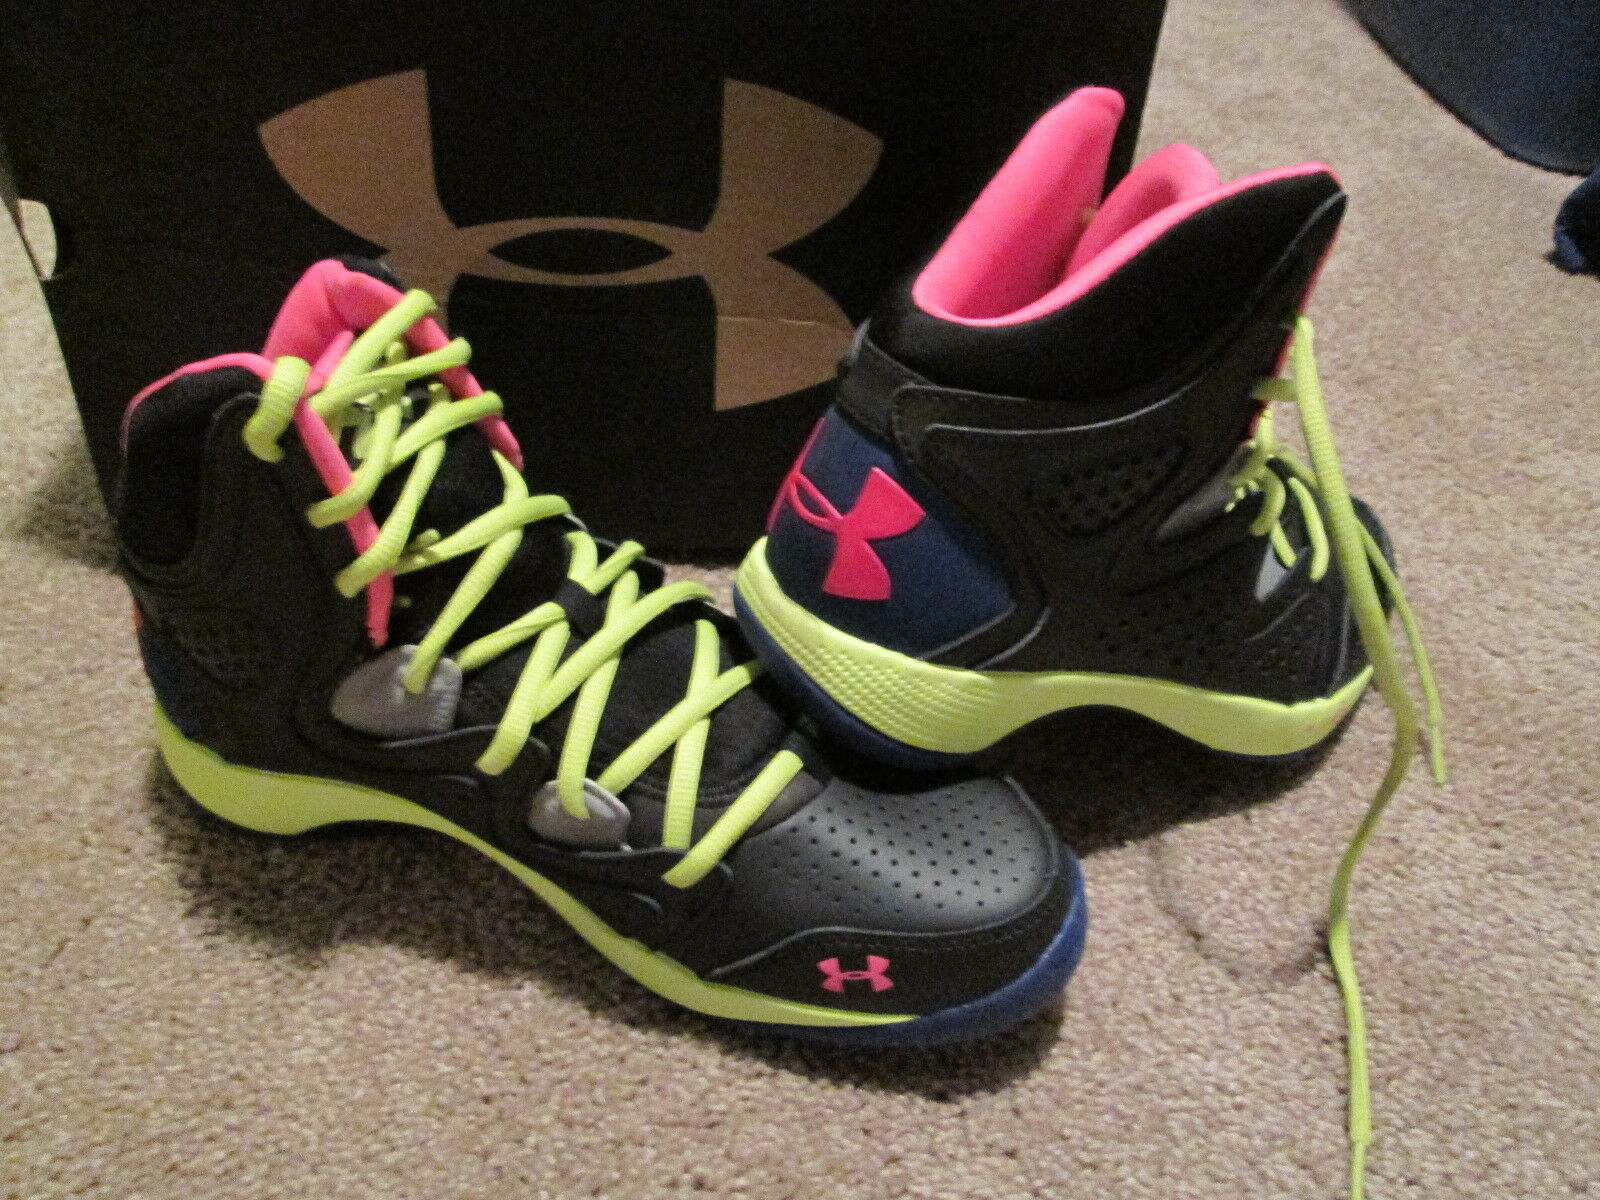 new product b87e5 441c9 NEW MENS UNDER ARMOUR MICRO G TORCH TORCH TORCH 2 BASKETBALL SHOES 9.5  BLK PINK